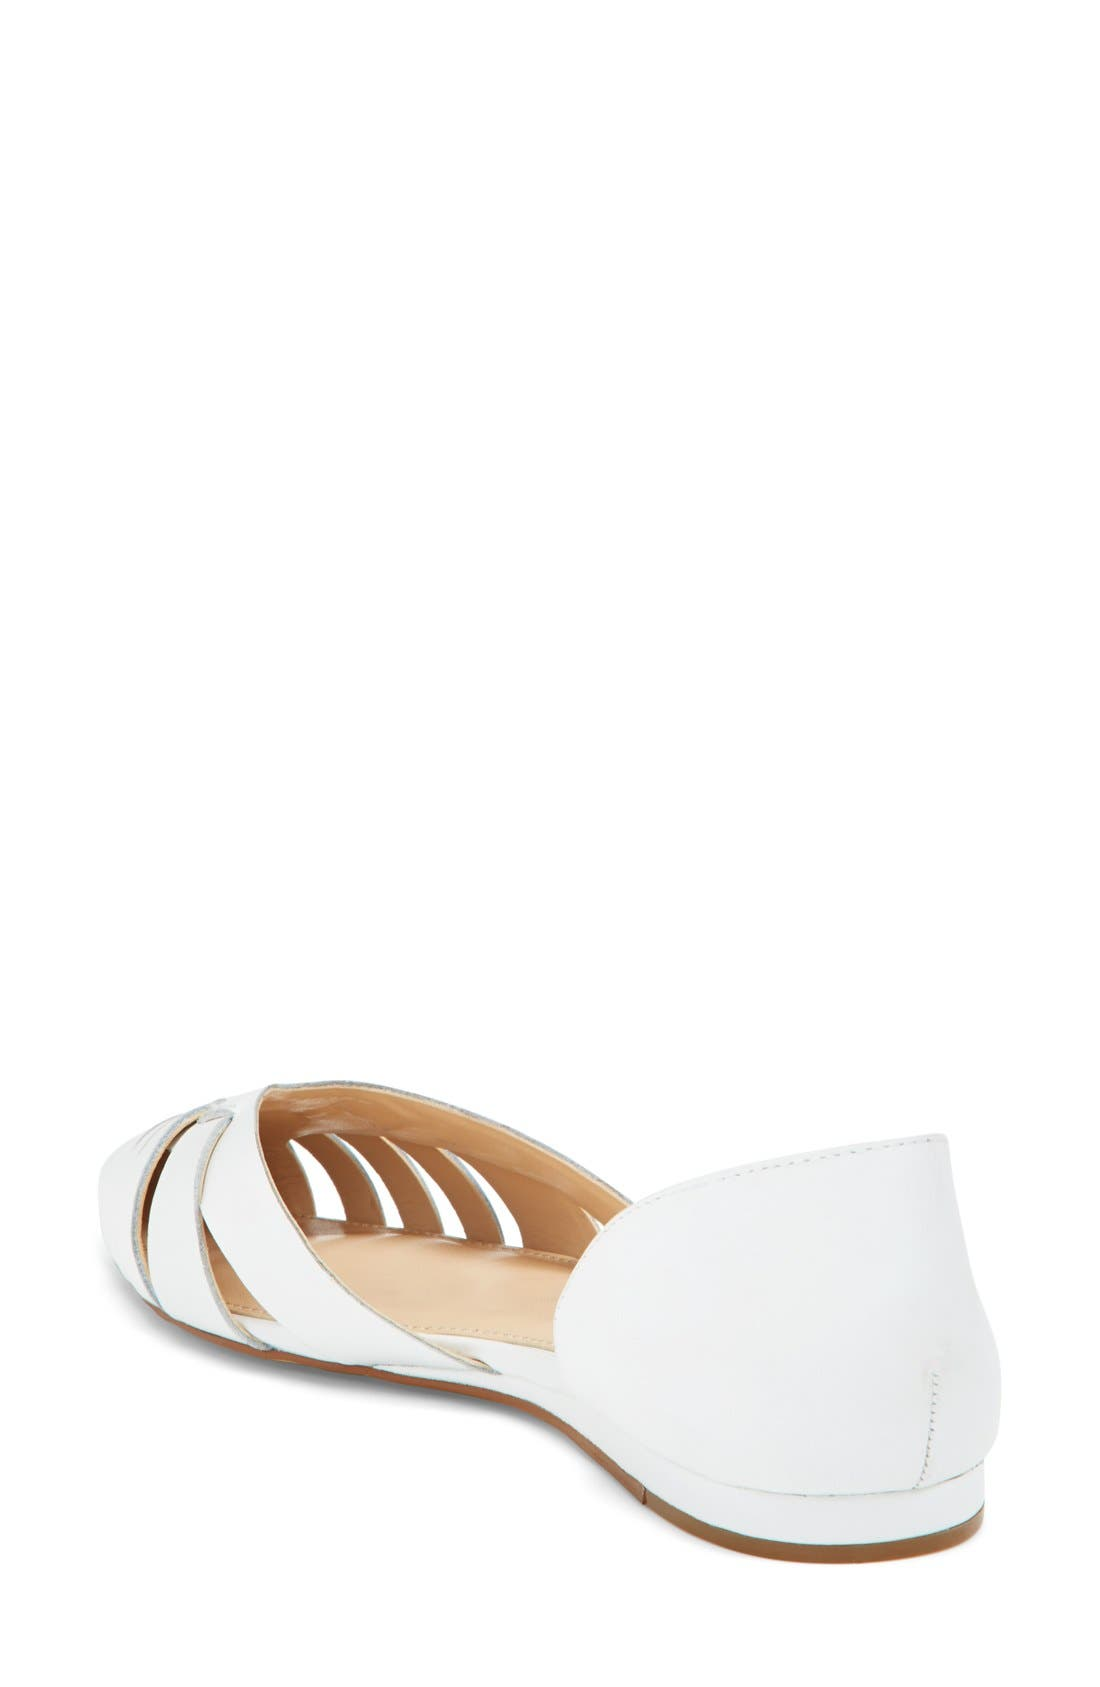 Alternate Image 2  - Vince Camuto 'Hallie' Woven Leather d'Orsay Flat (Women) (Nordstrom Exclusive)